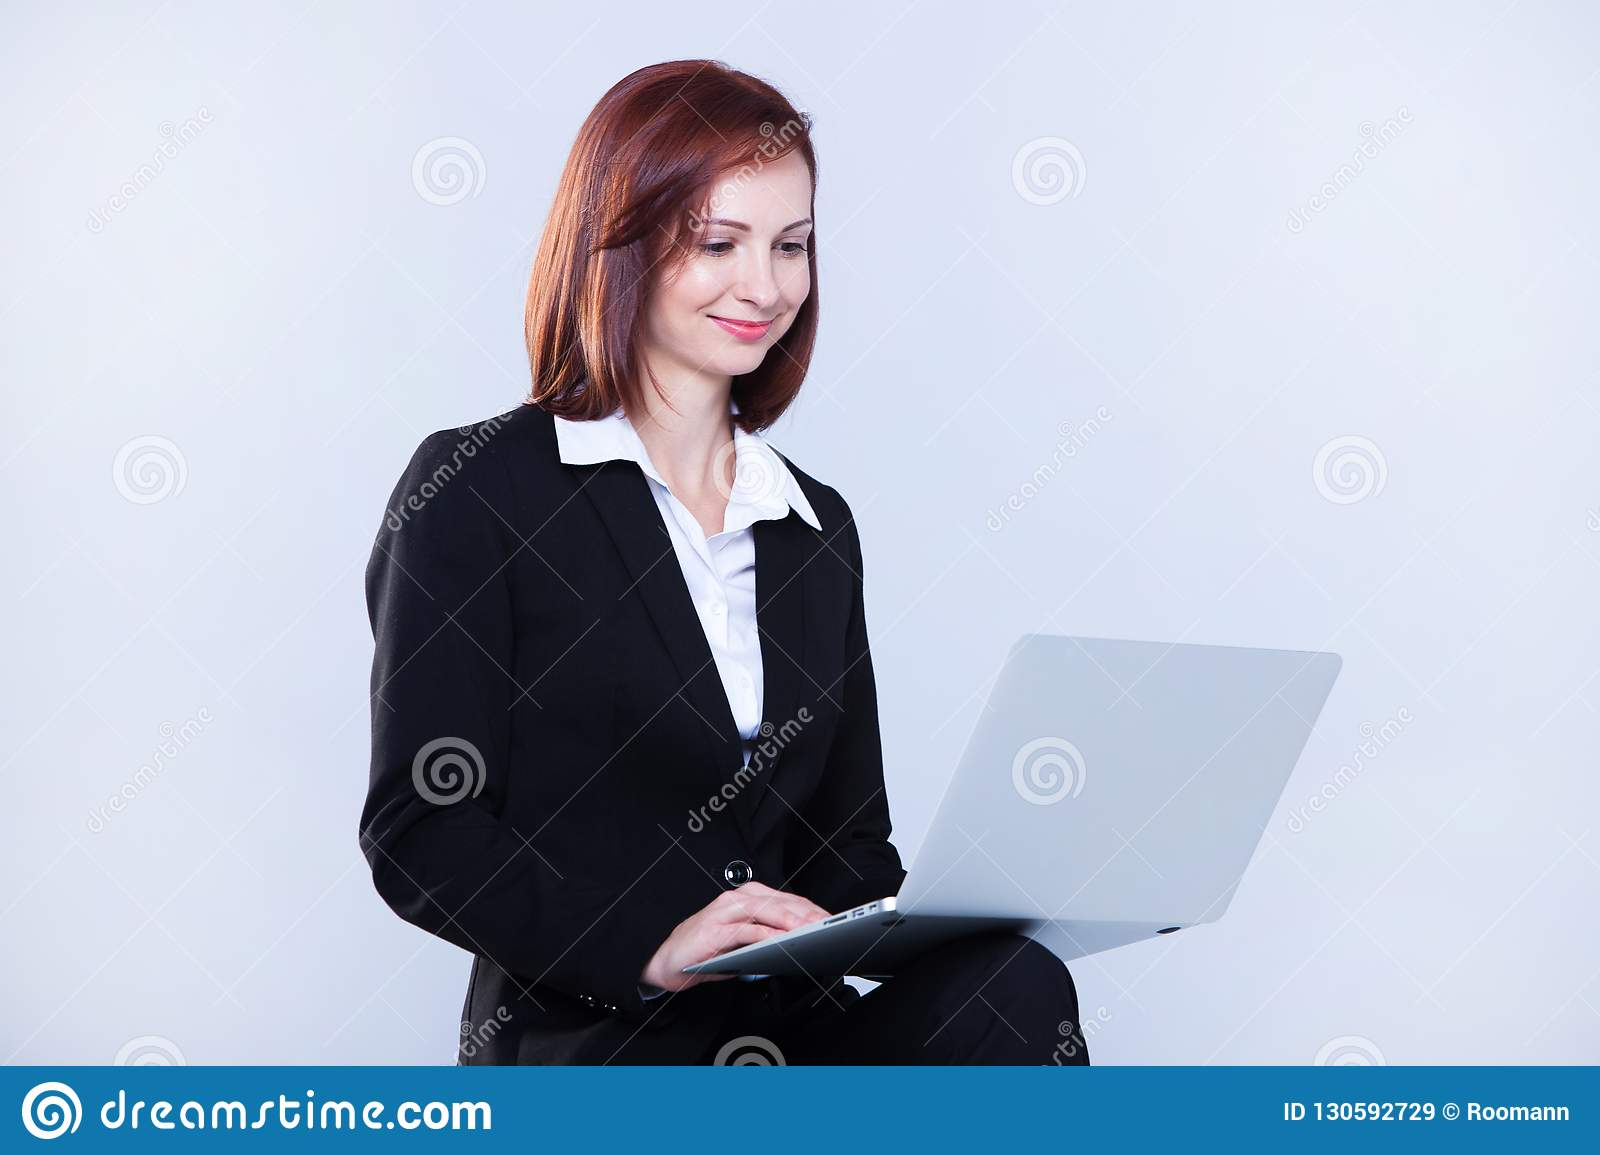 Young business woman working on laptop. Attractive mature businesswoman working on laptop